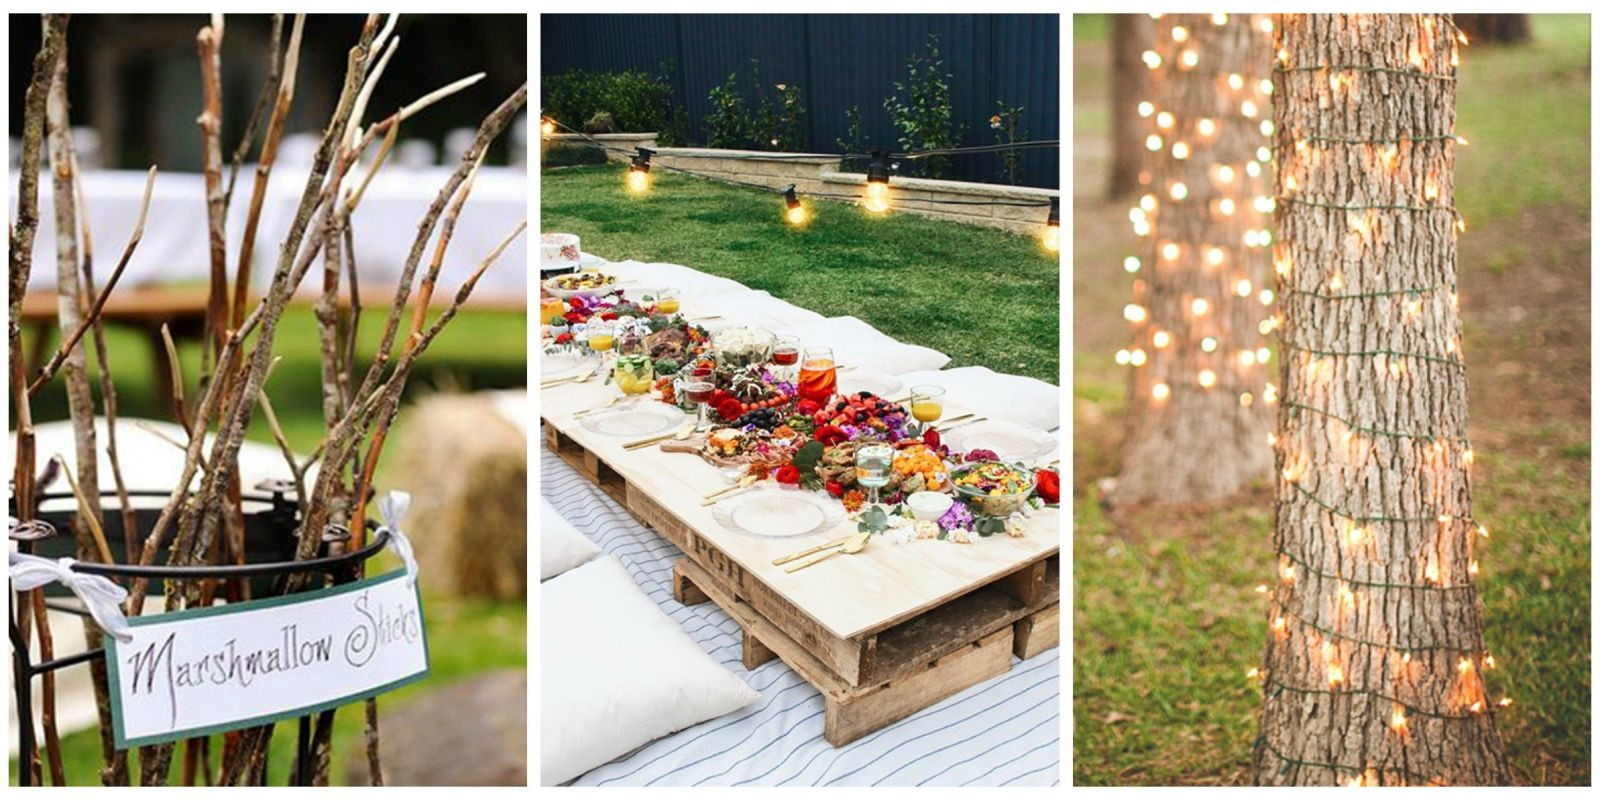 Backyard Summer Party Decorating Ideas  14 Best Backyard Party Ideas for Adults Summer